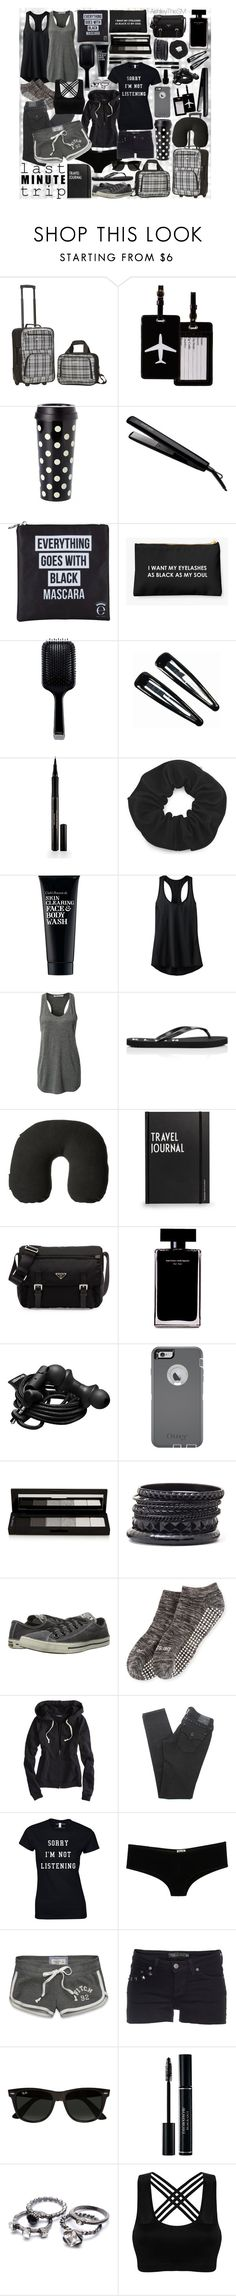 """last MINUTE trip"" by ashleythesm ❤ liked on Polyvore featuring Rockland Luggage, TravelSmith, Kate Spade, José Eber, Eyeko, GHD, Clips, Elizabeth Arden, Clark's Botanicals and Athleta"